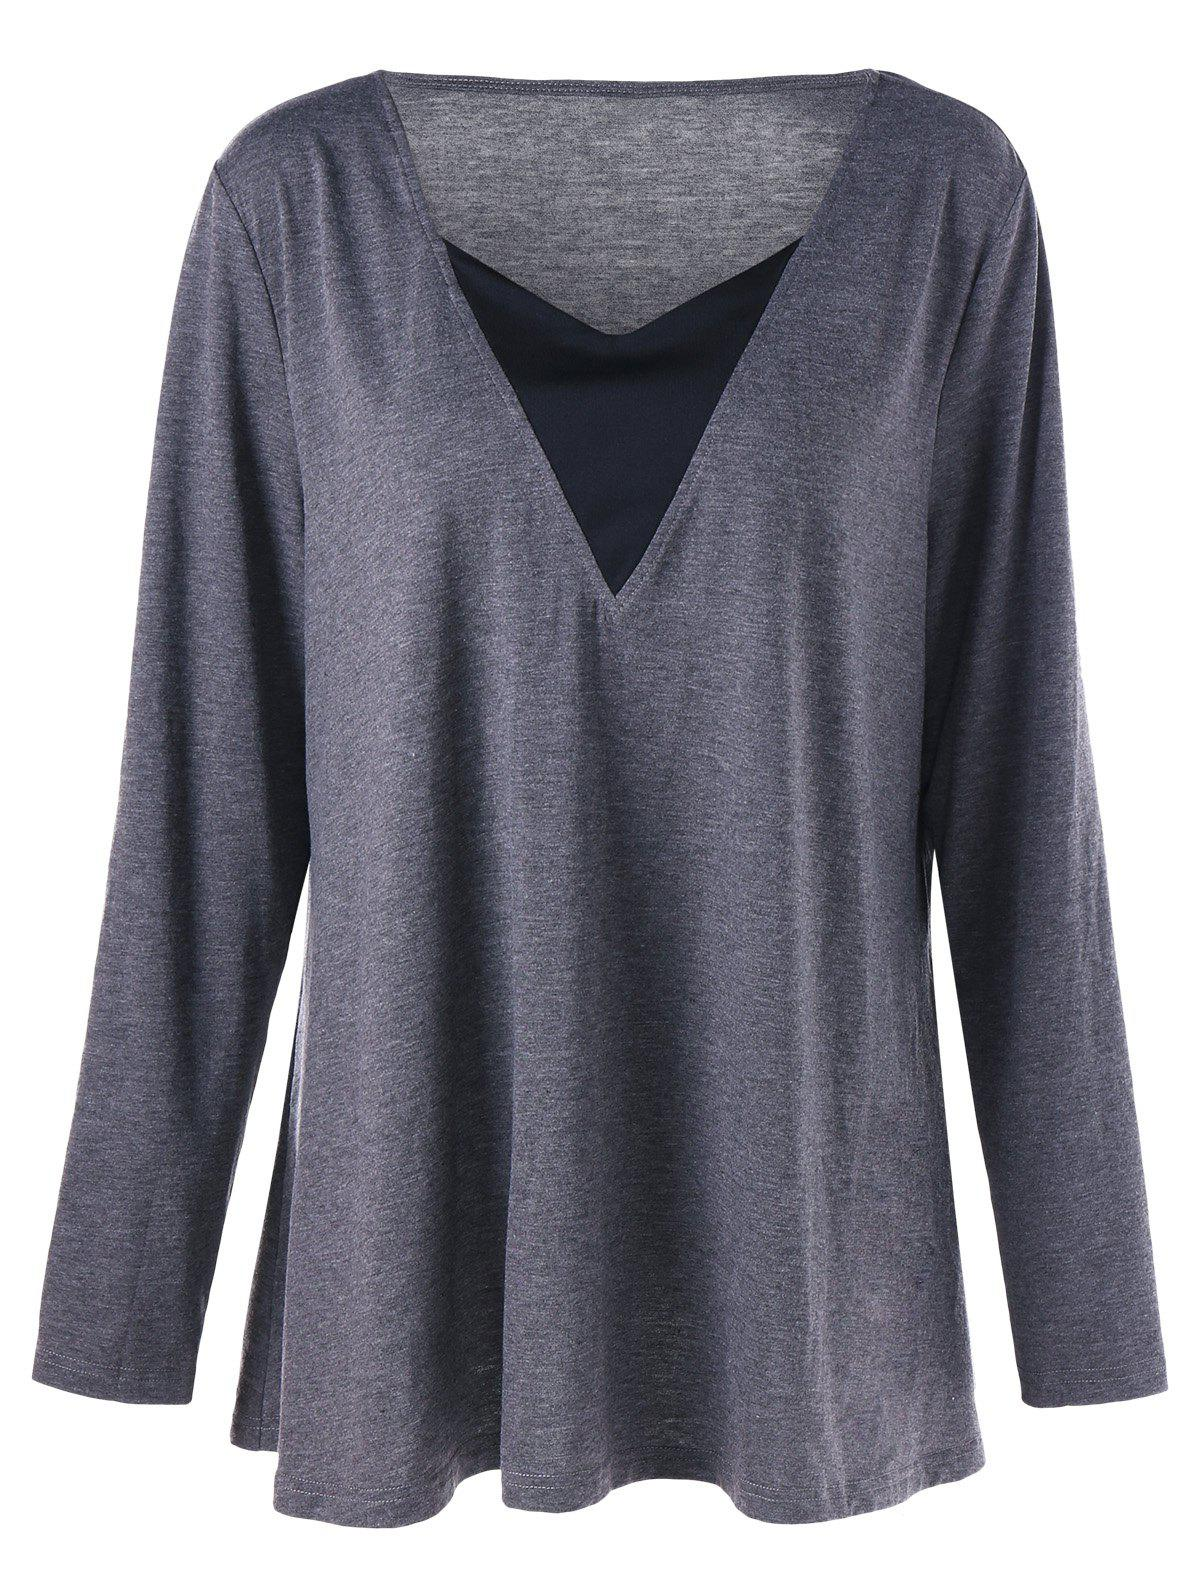 V Neck Long Sleeve Plus Size Tunic T-shirtWOMEN<br><br>Size: 5XL; Color: GRAY; Material: Polyester,Spandex; Shirt Length: Regular; Sleeve Length: Full; Collar: V-Neck; Style: Fashion; Season: Fall,Spring; Pattern Type: Patchwork; Weight: 0.3200kg; Package Contents: 1 x T-shirt;